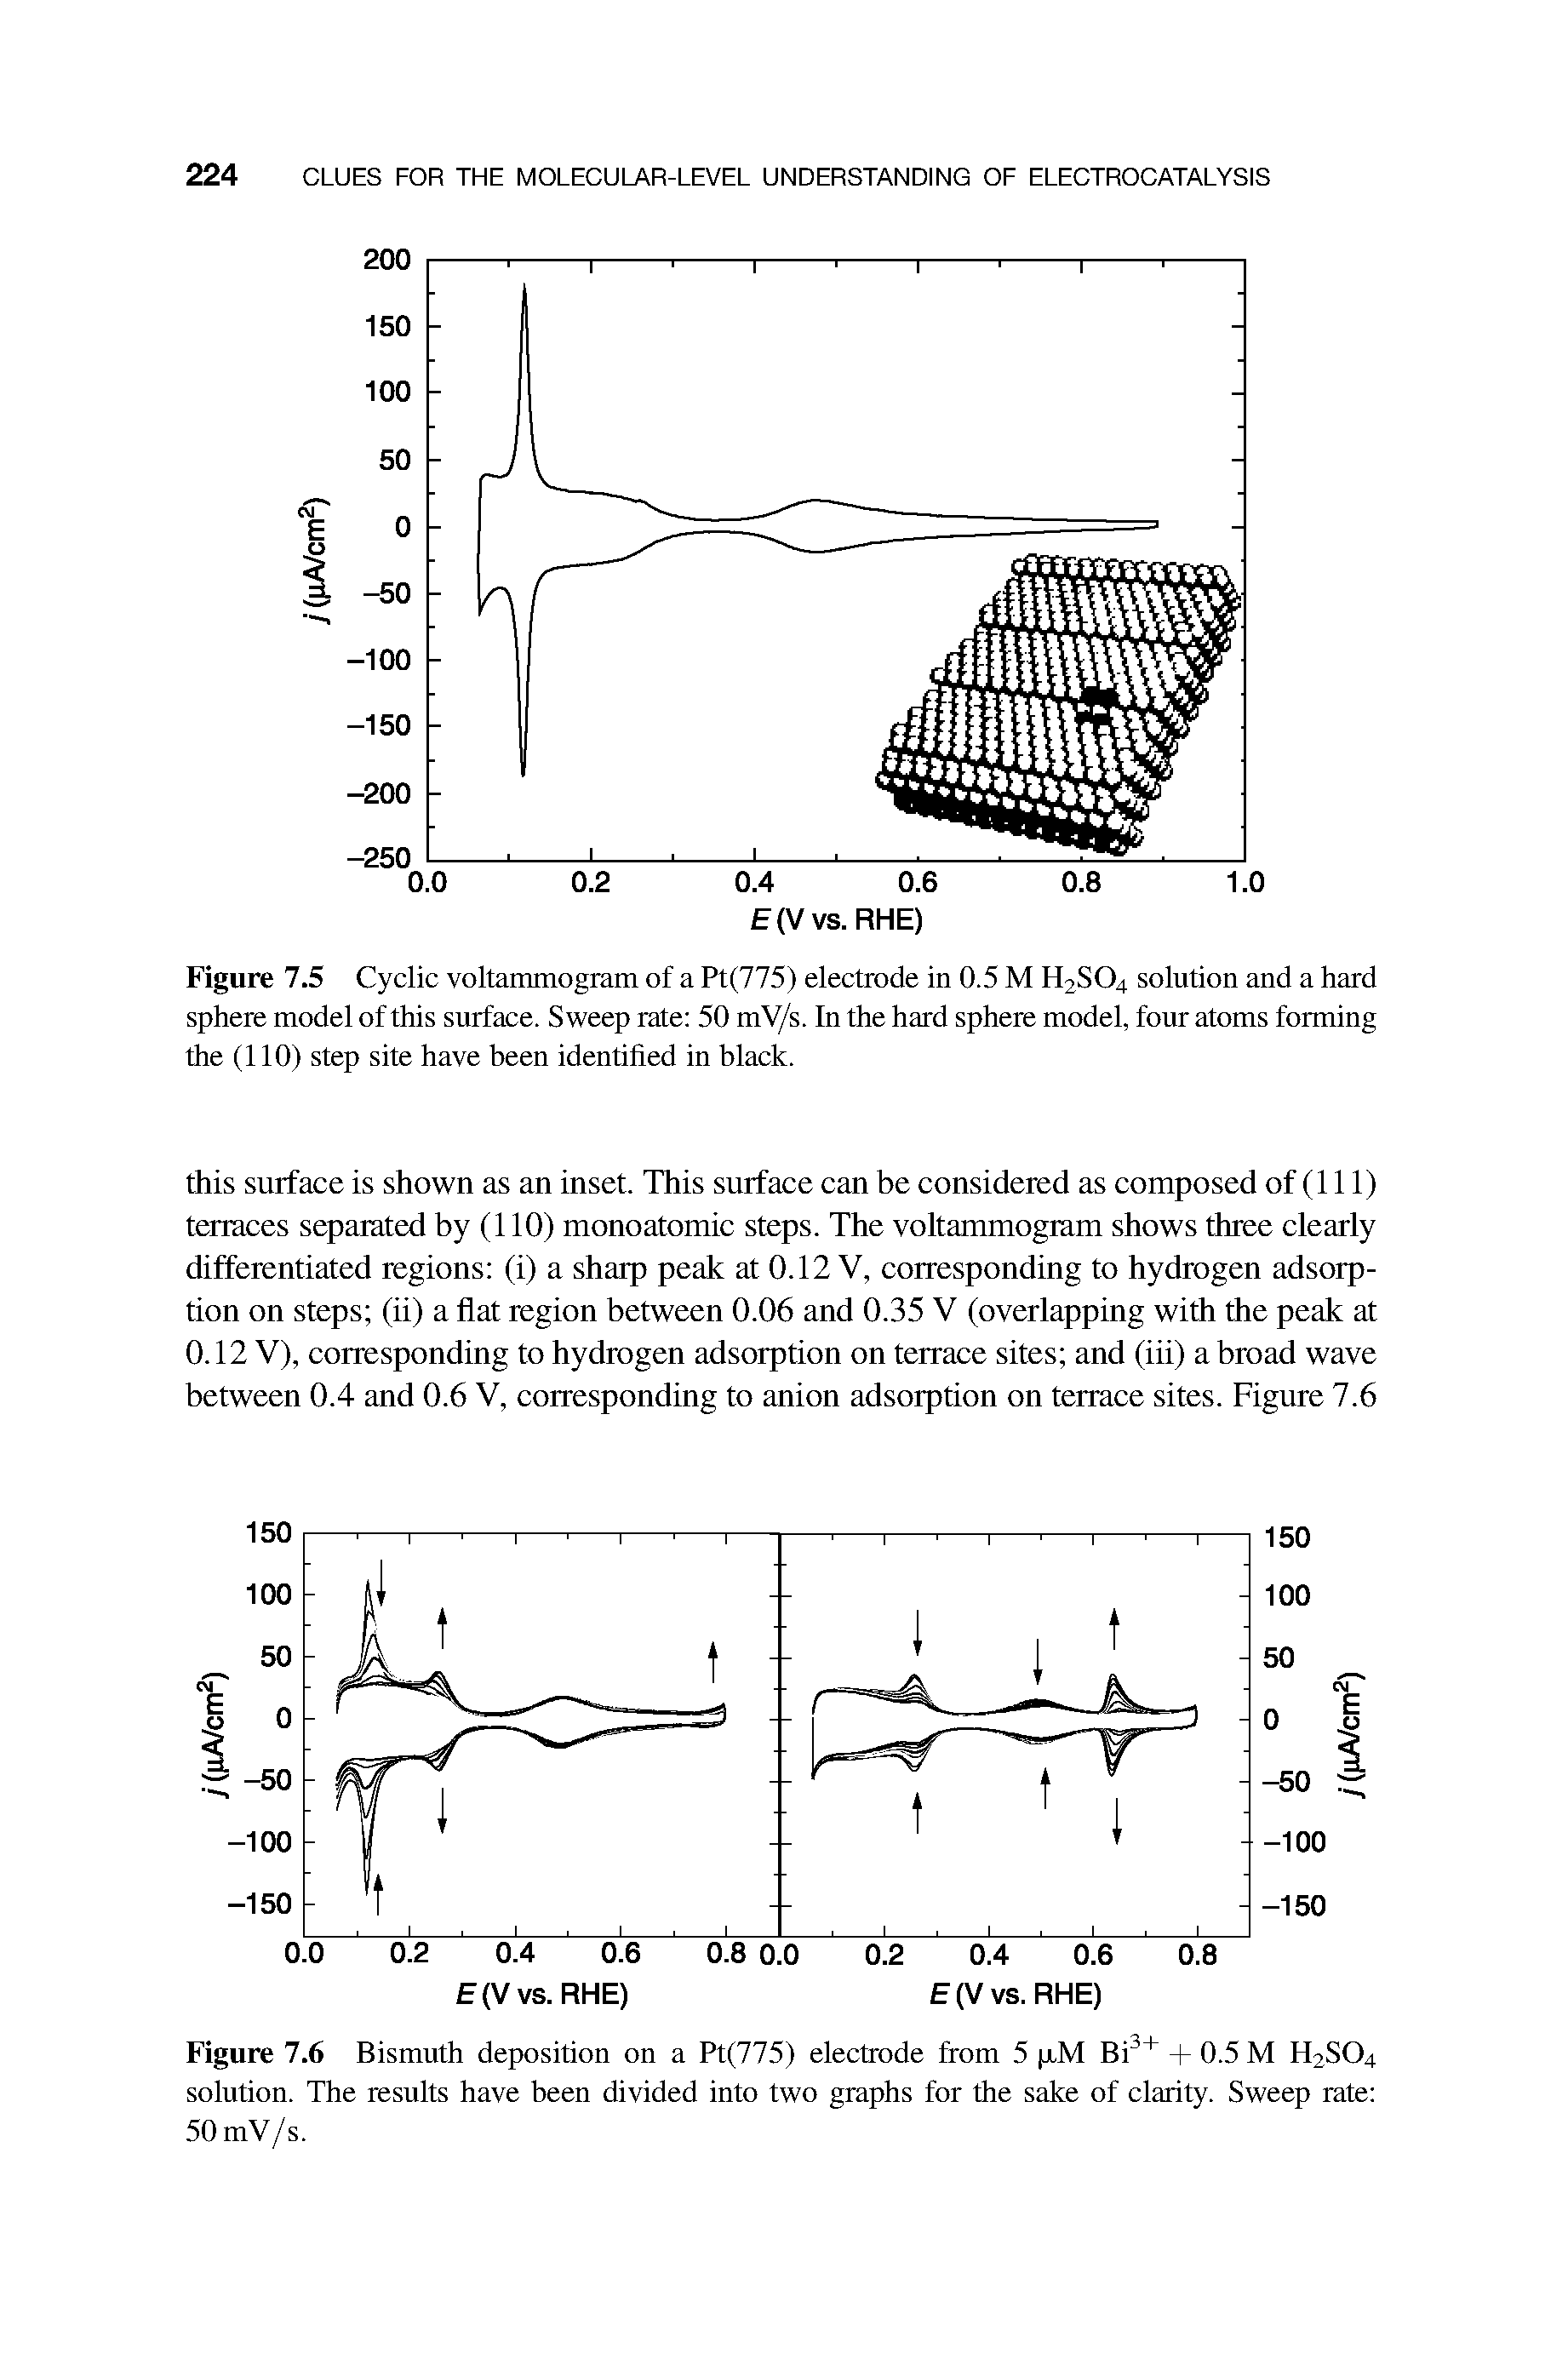 "Figure 7.5 <a href=""/info/cyclic_voltammogram"">Cyclic voltammogram</a> of a Pt(775) electrode in 0.5 M H2SO4 solution and a hard sphere model of this surface. <a href=""/info/sweep_rate"">Sweep rate</a> 50 mV/s. In the hard sphere model, <a href=""/info/four_atoms"">four atoms</a> forming the (110) <a href=""/info/step_sites"">step site</a> have been identified in black."